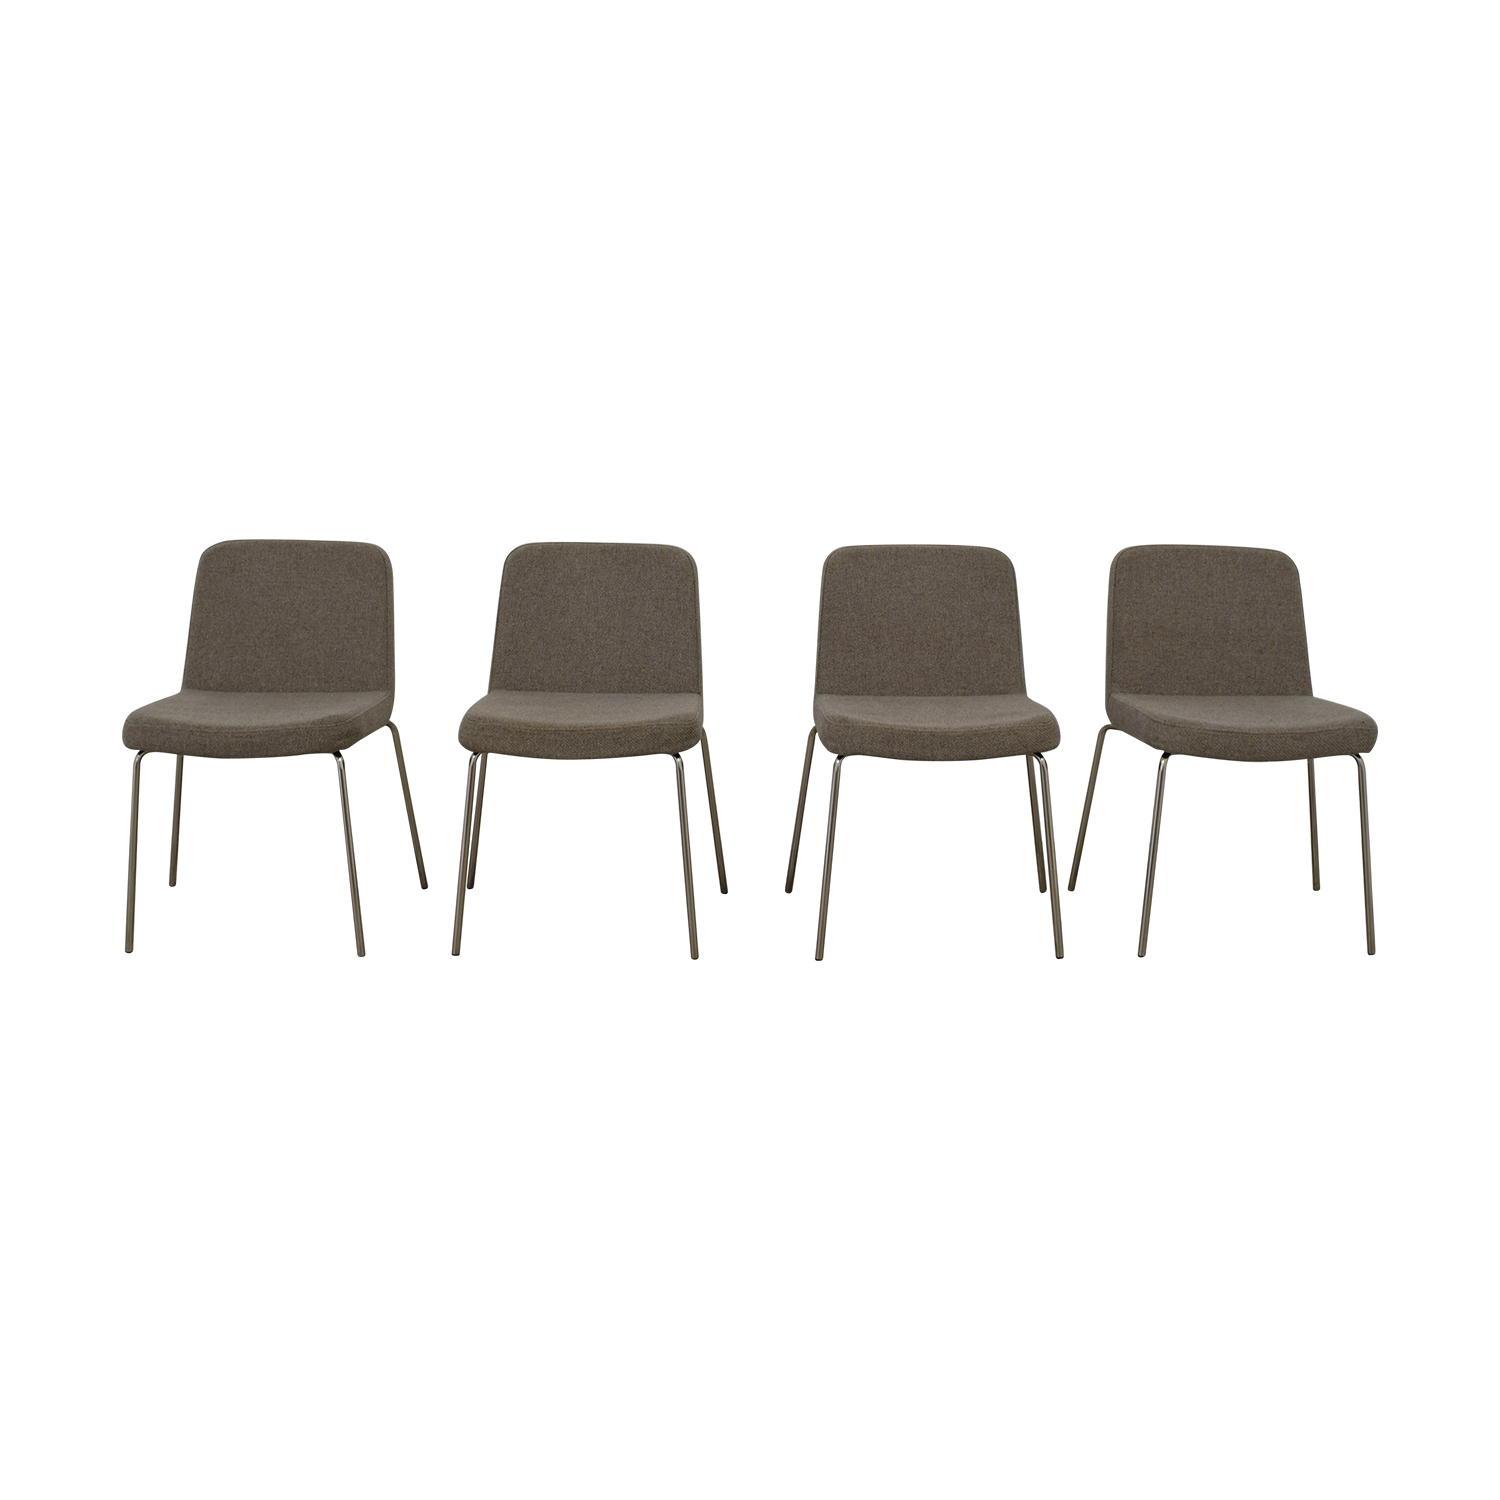 CB2 CB2 Grey Upholstered Dining Chairs discount